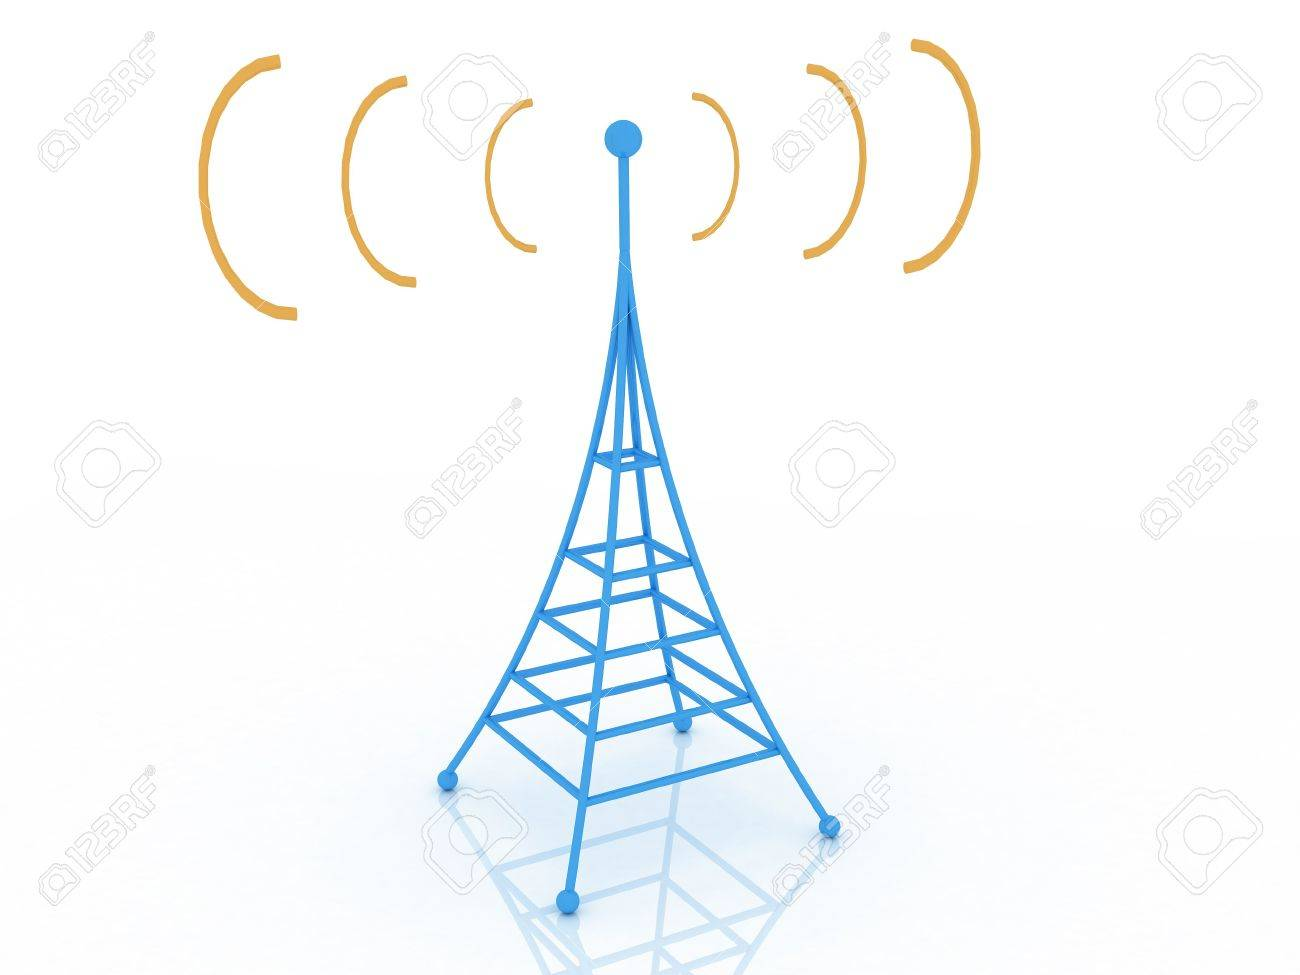 1300x975 3d Render Of Radio Tower. Communication Concept. Stock Photo